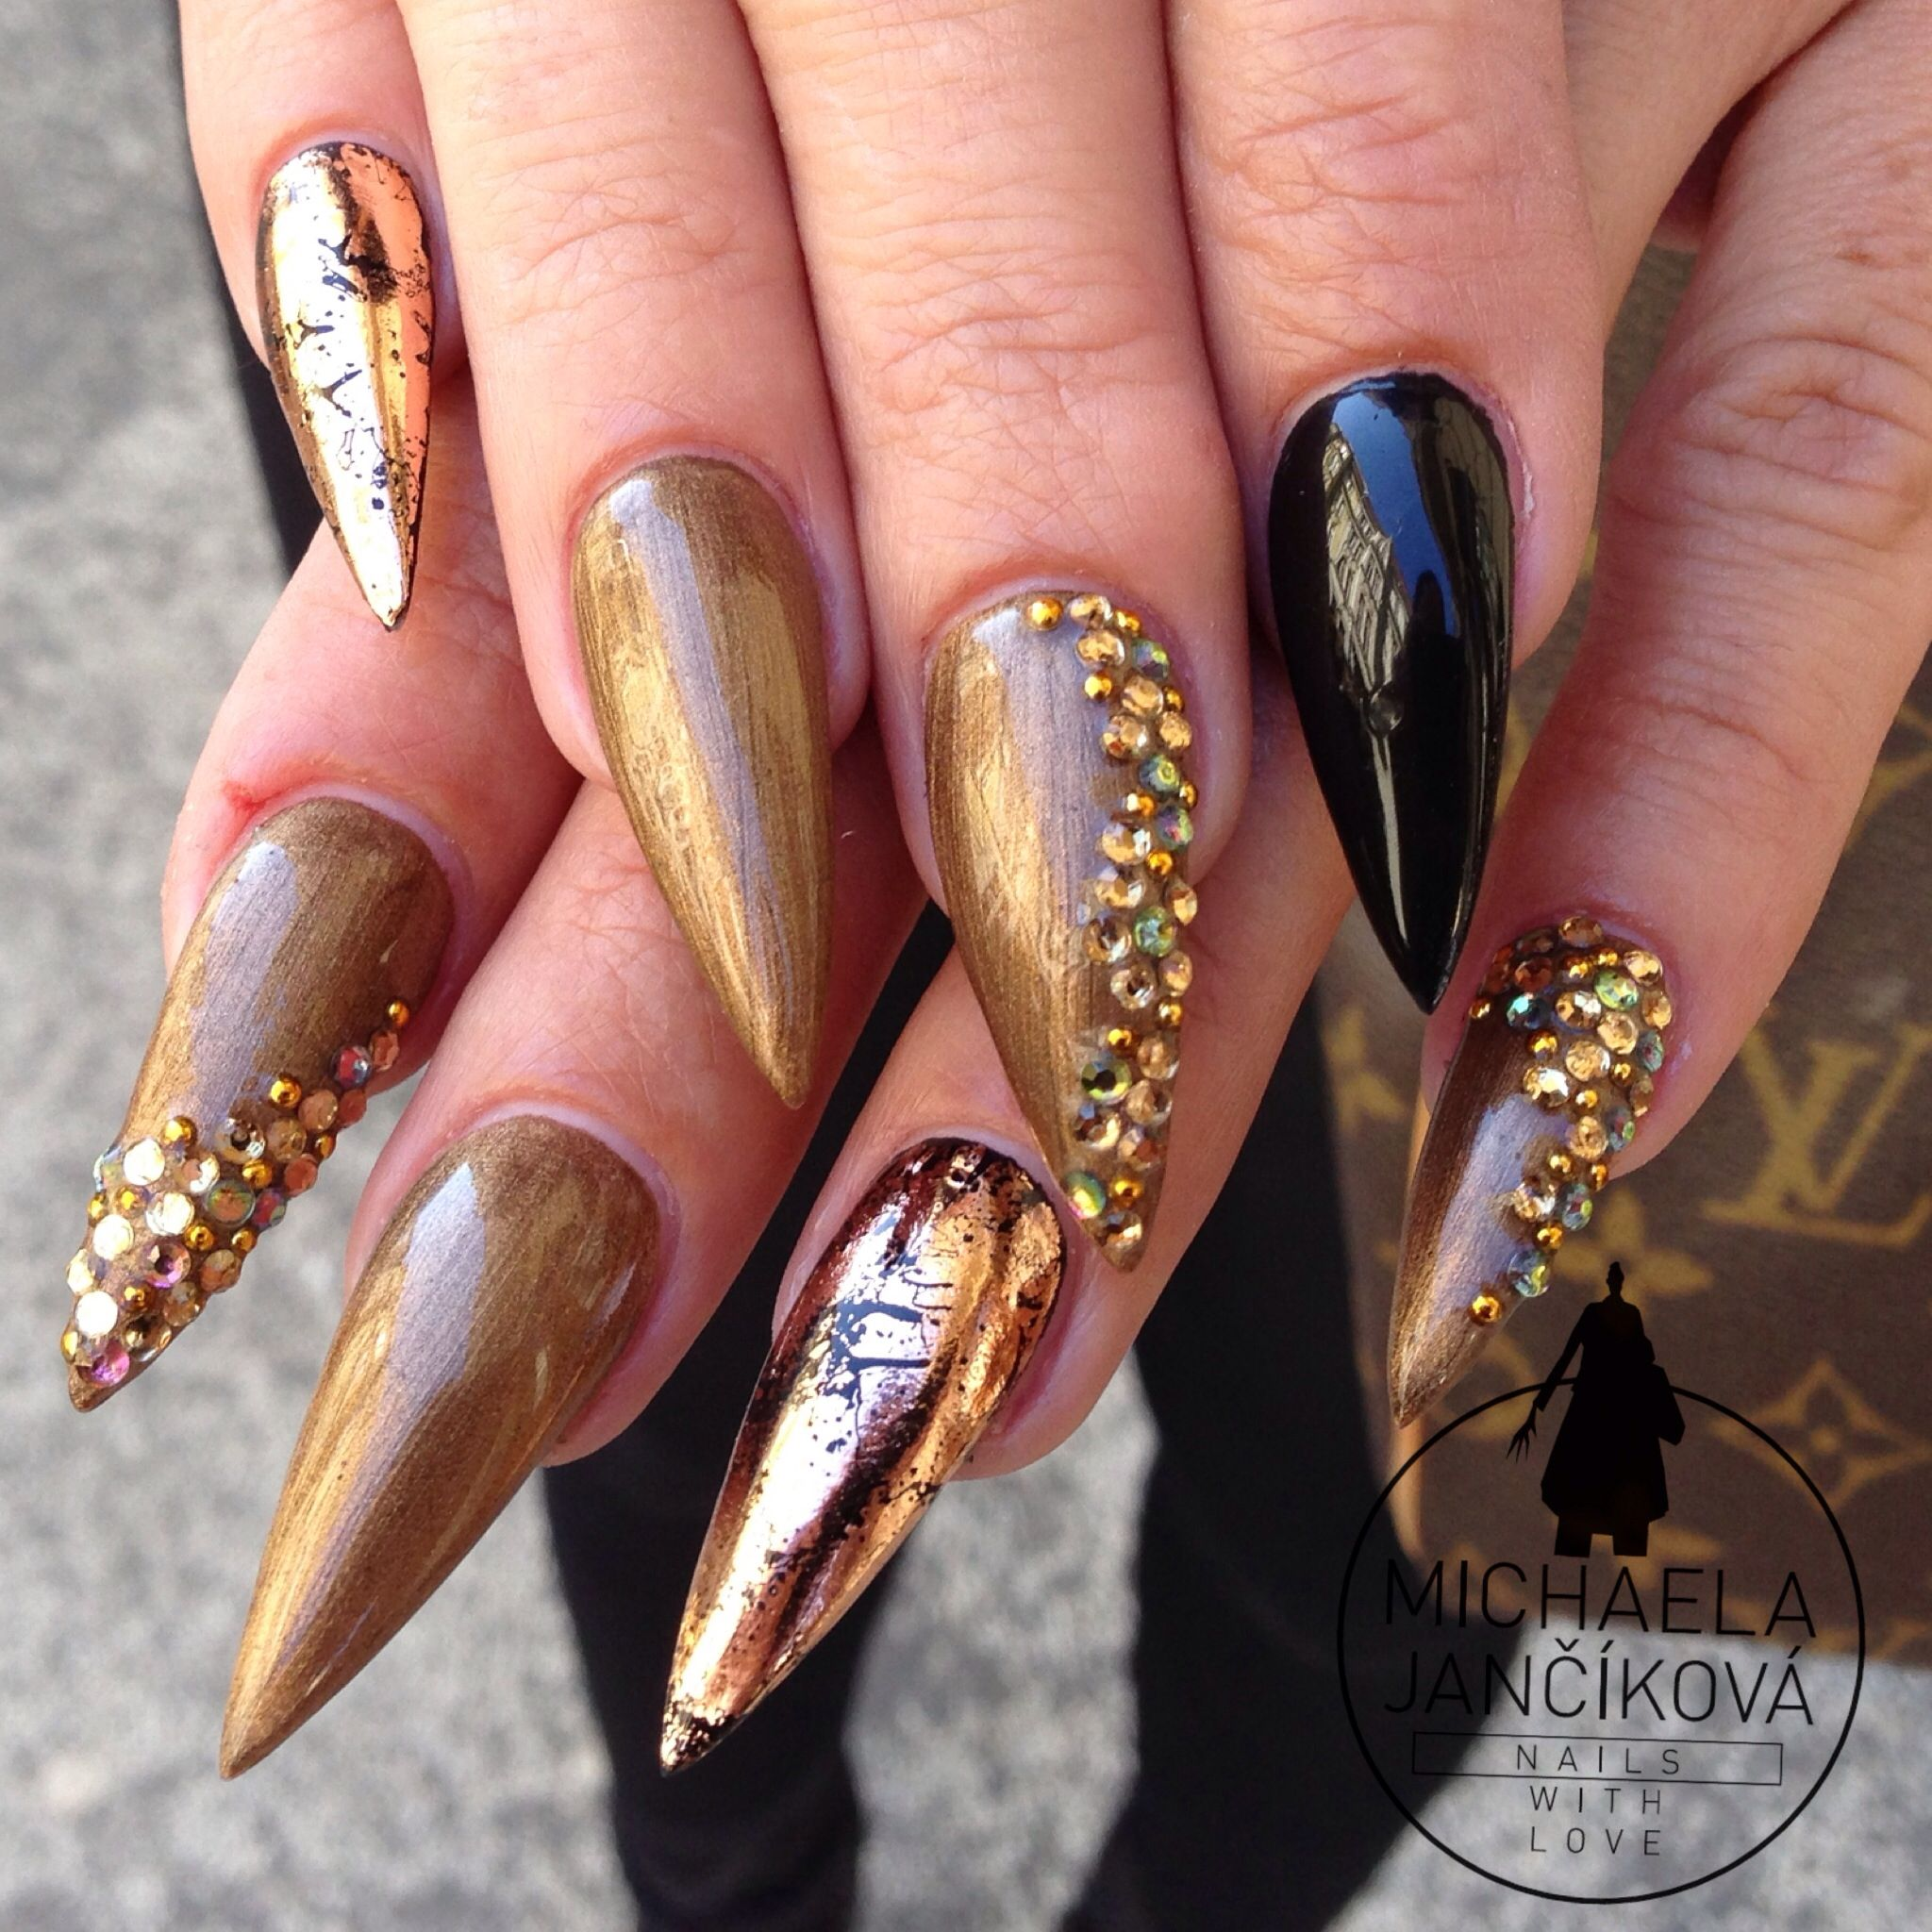 Stiletto nails with rhinestones and foil | Nails With Love | Pinterest